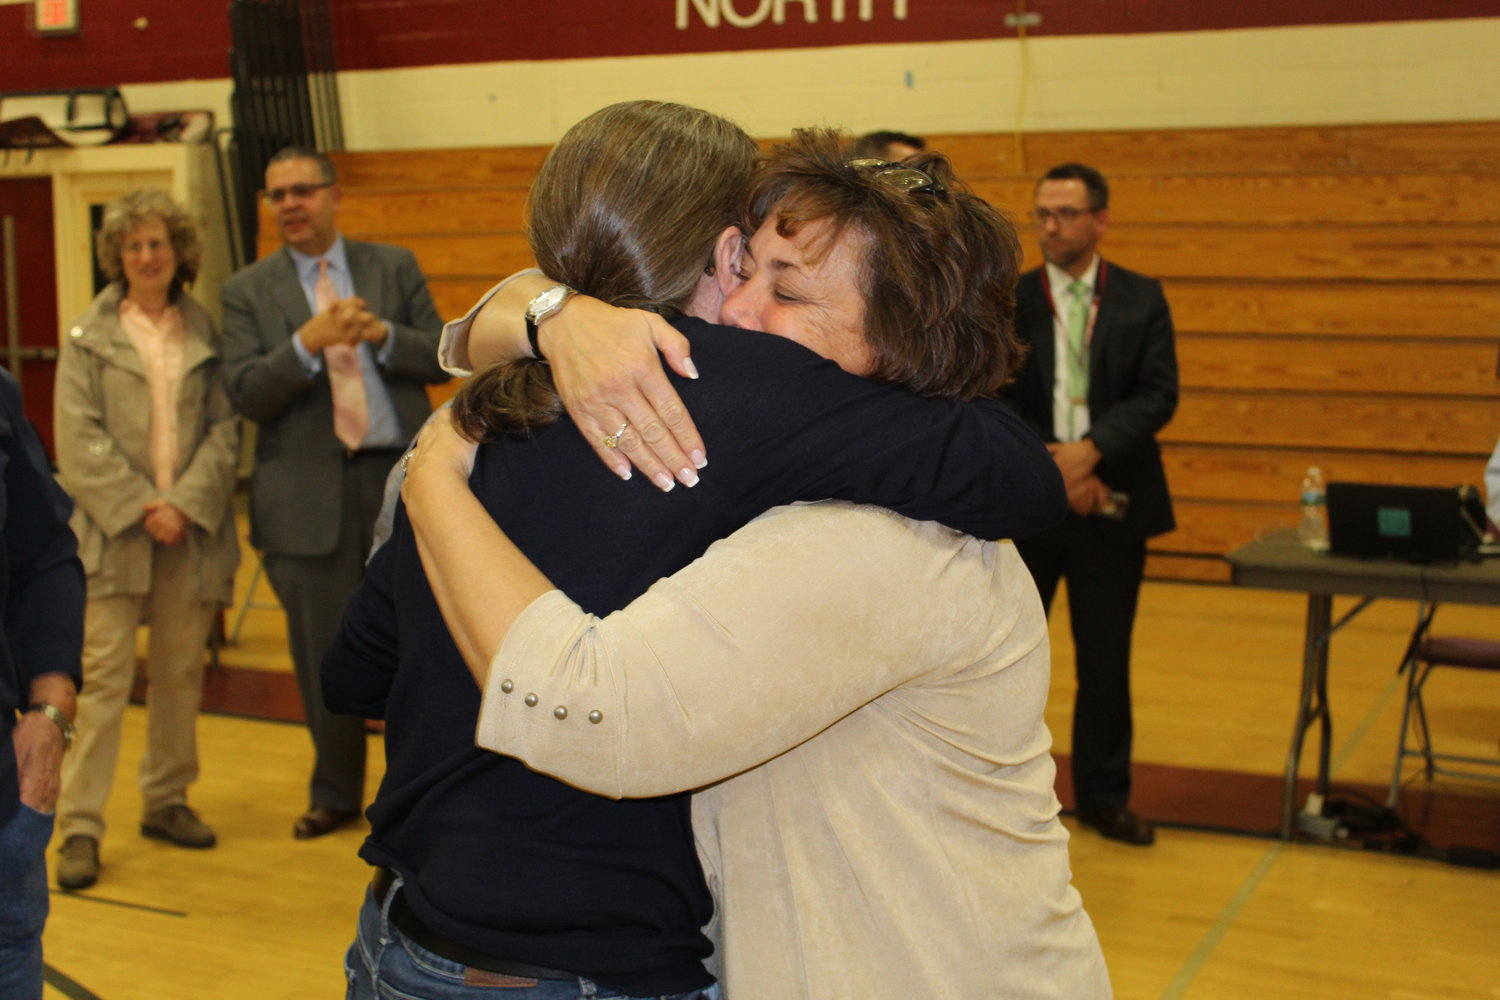 Former school board trustee Amy Beyer, right, hugged her friend Sara Jones, who was re-elected to serve on the North Shore Board of Education Tuesday night. Jones, of Sea Cliff, is the president of the school board